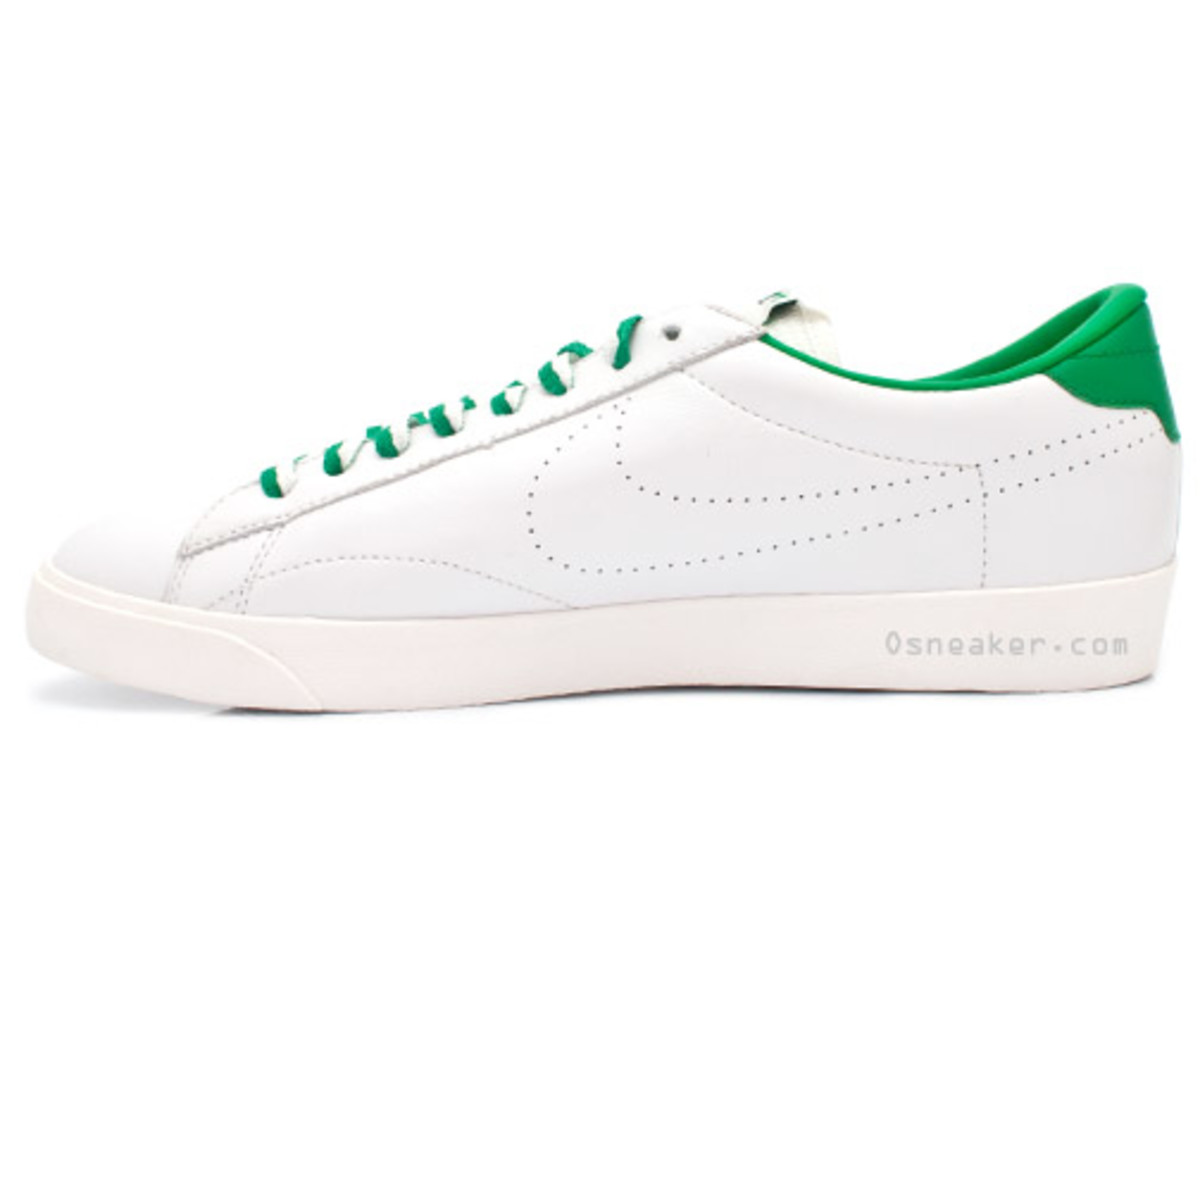 nike-tennis-classic-ac-nd-white-lucky-green-3